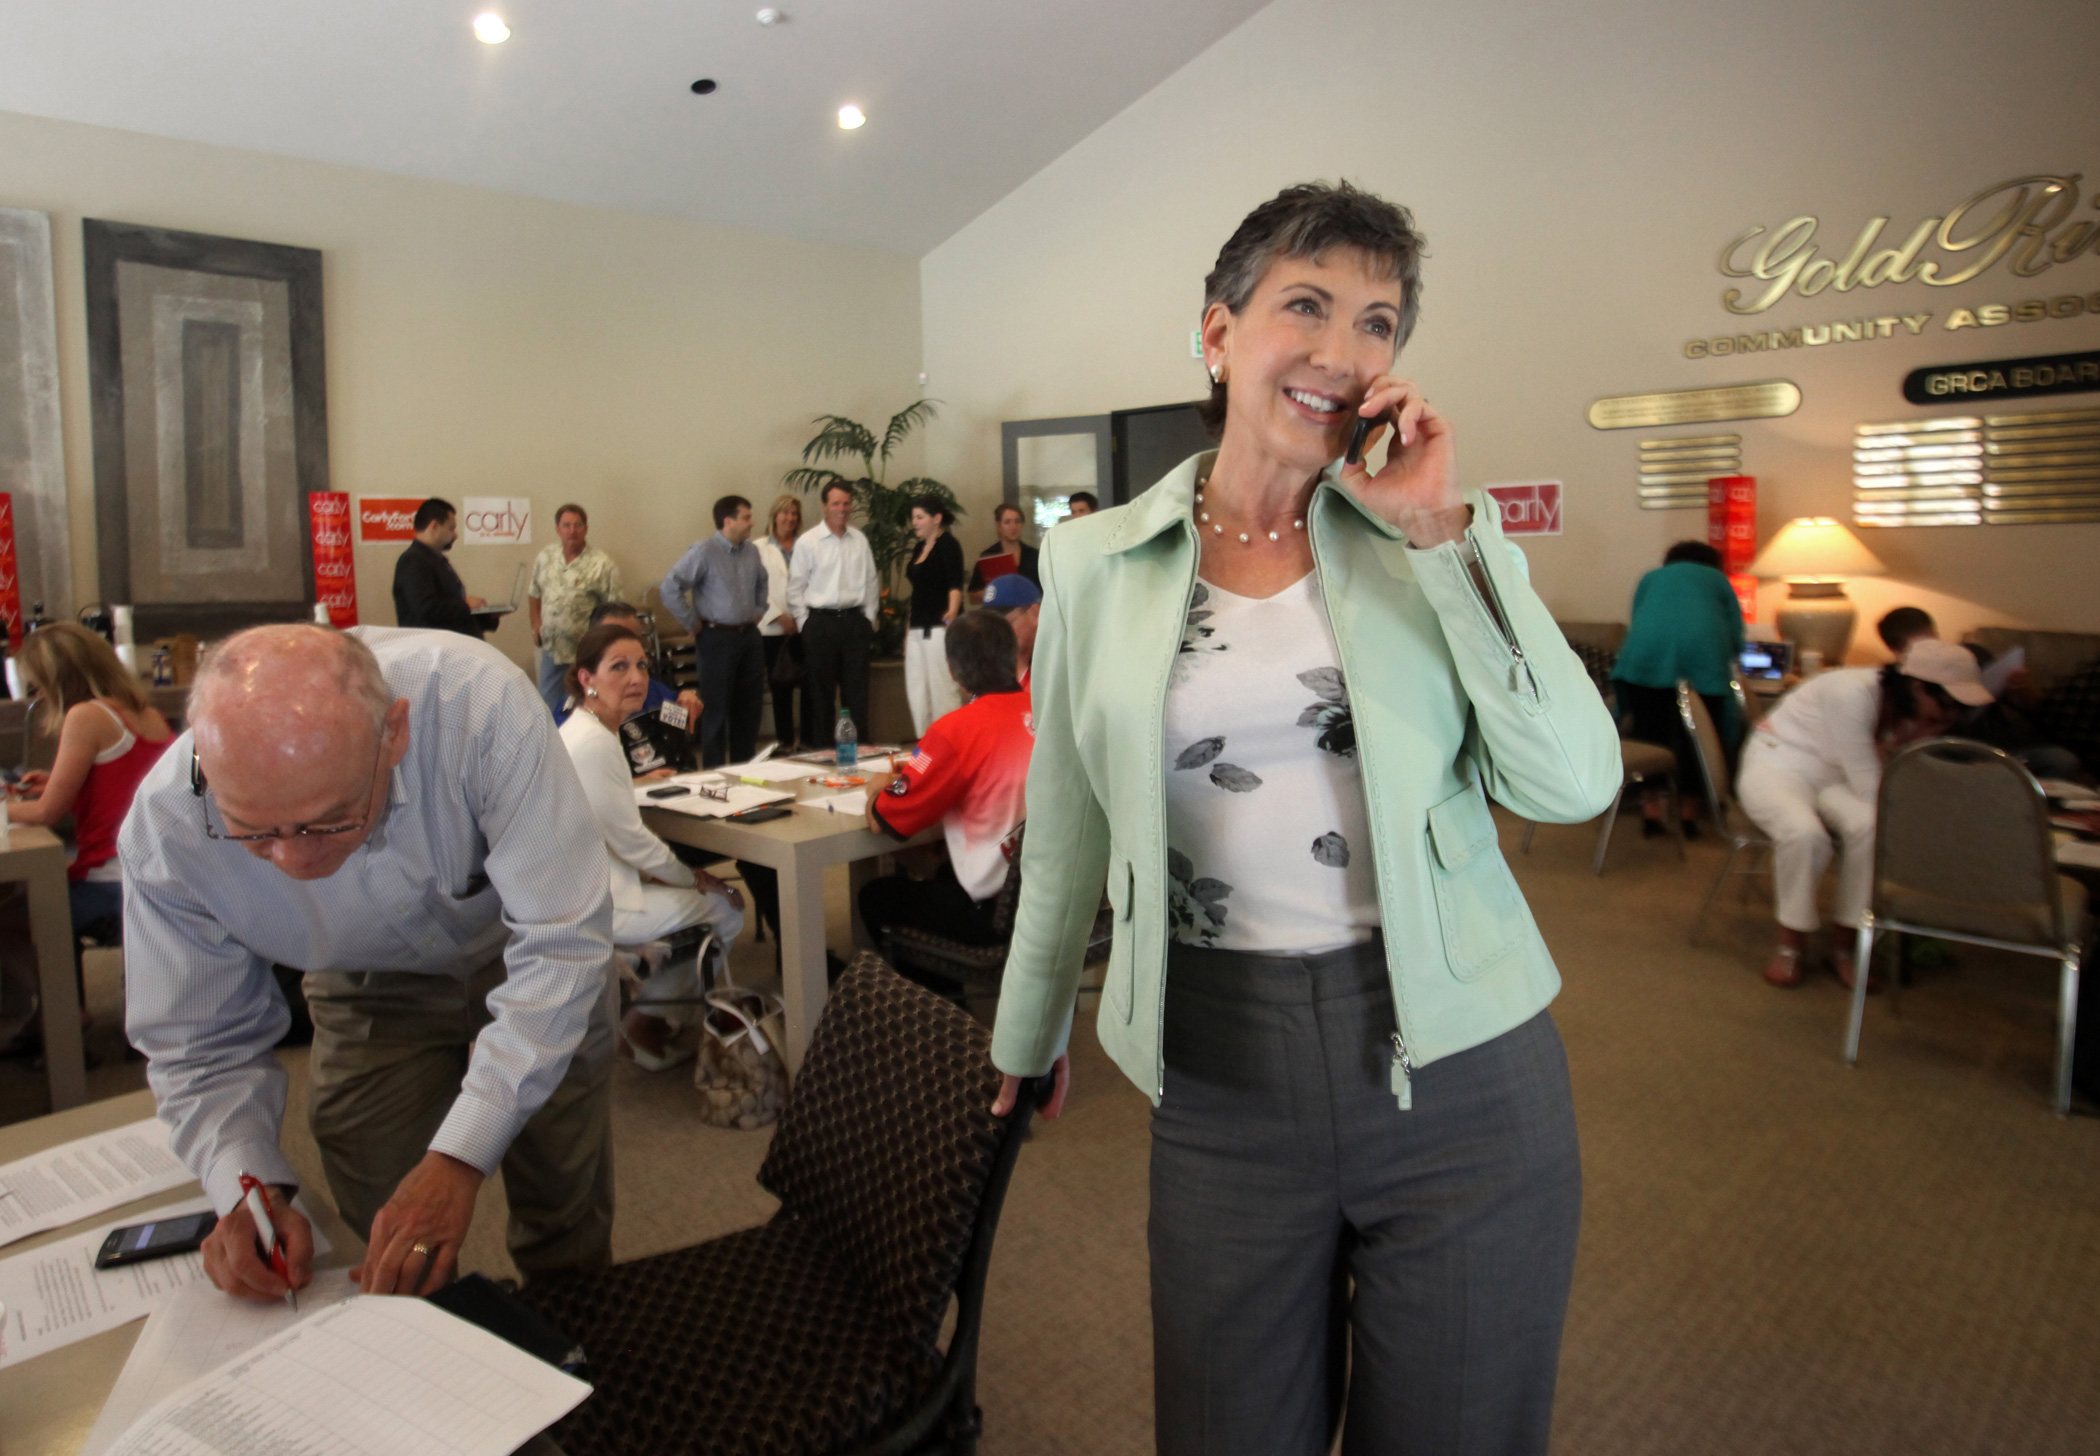 Carly Fiorina talks to a potential voter during her visit to a phone bank during her Senate campaign on June 5, 2010 in Gold River, Calif.